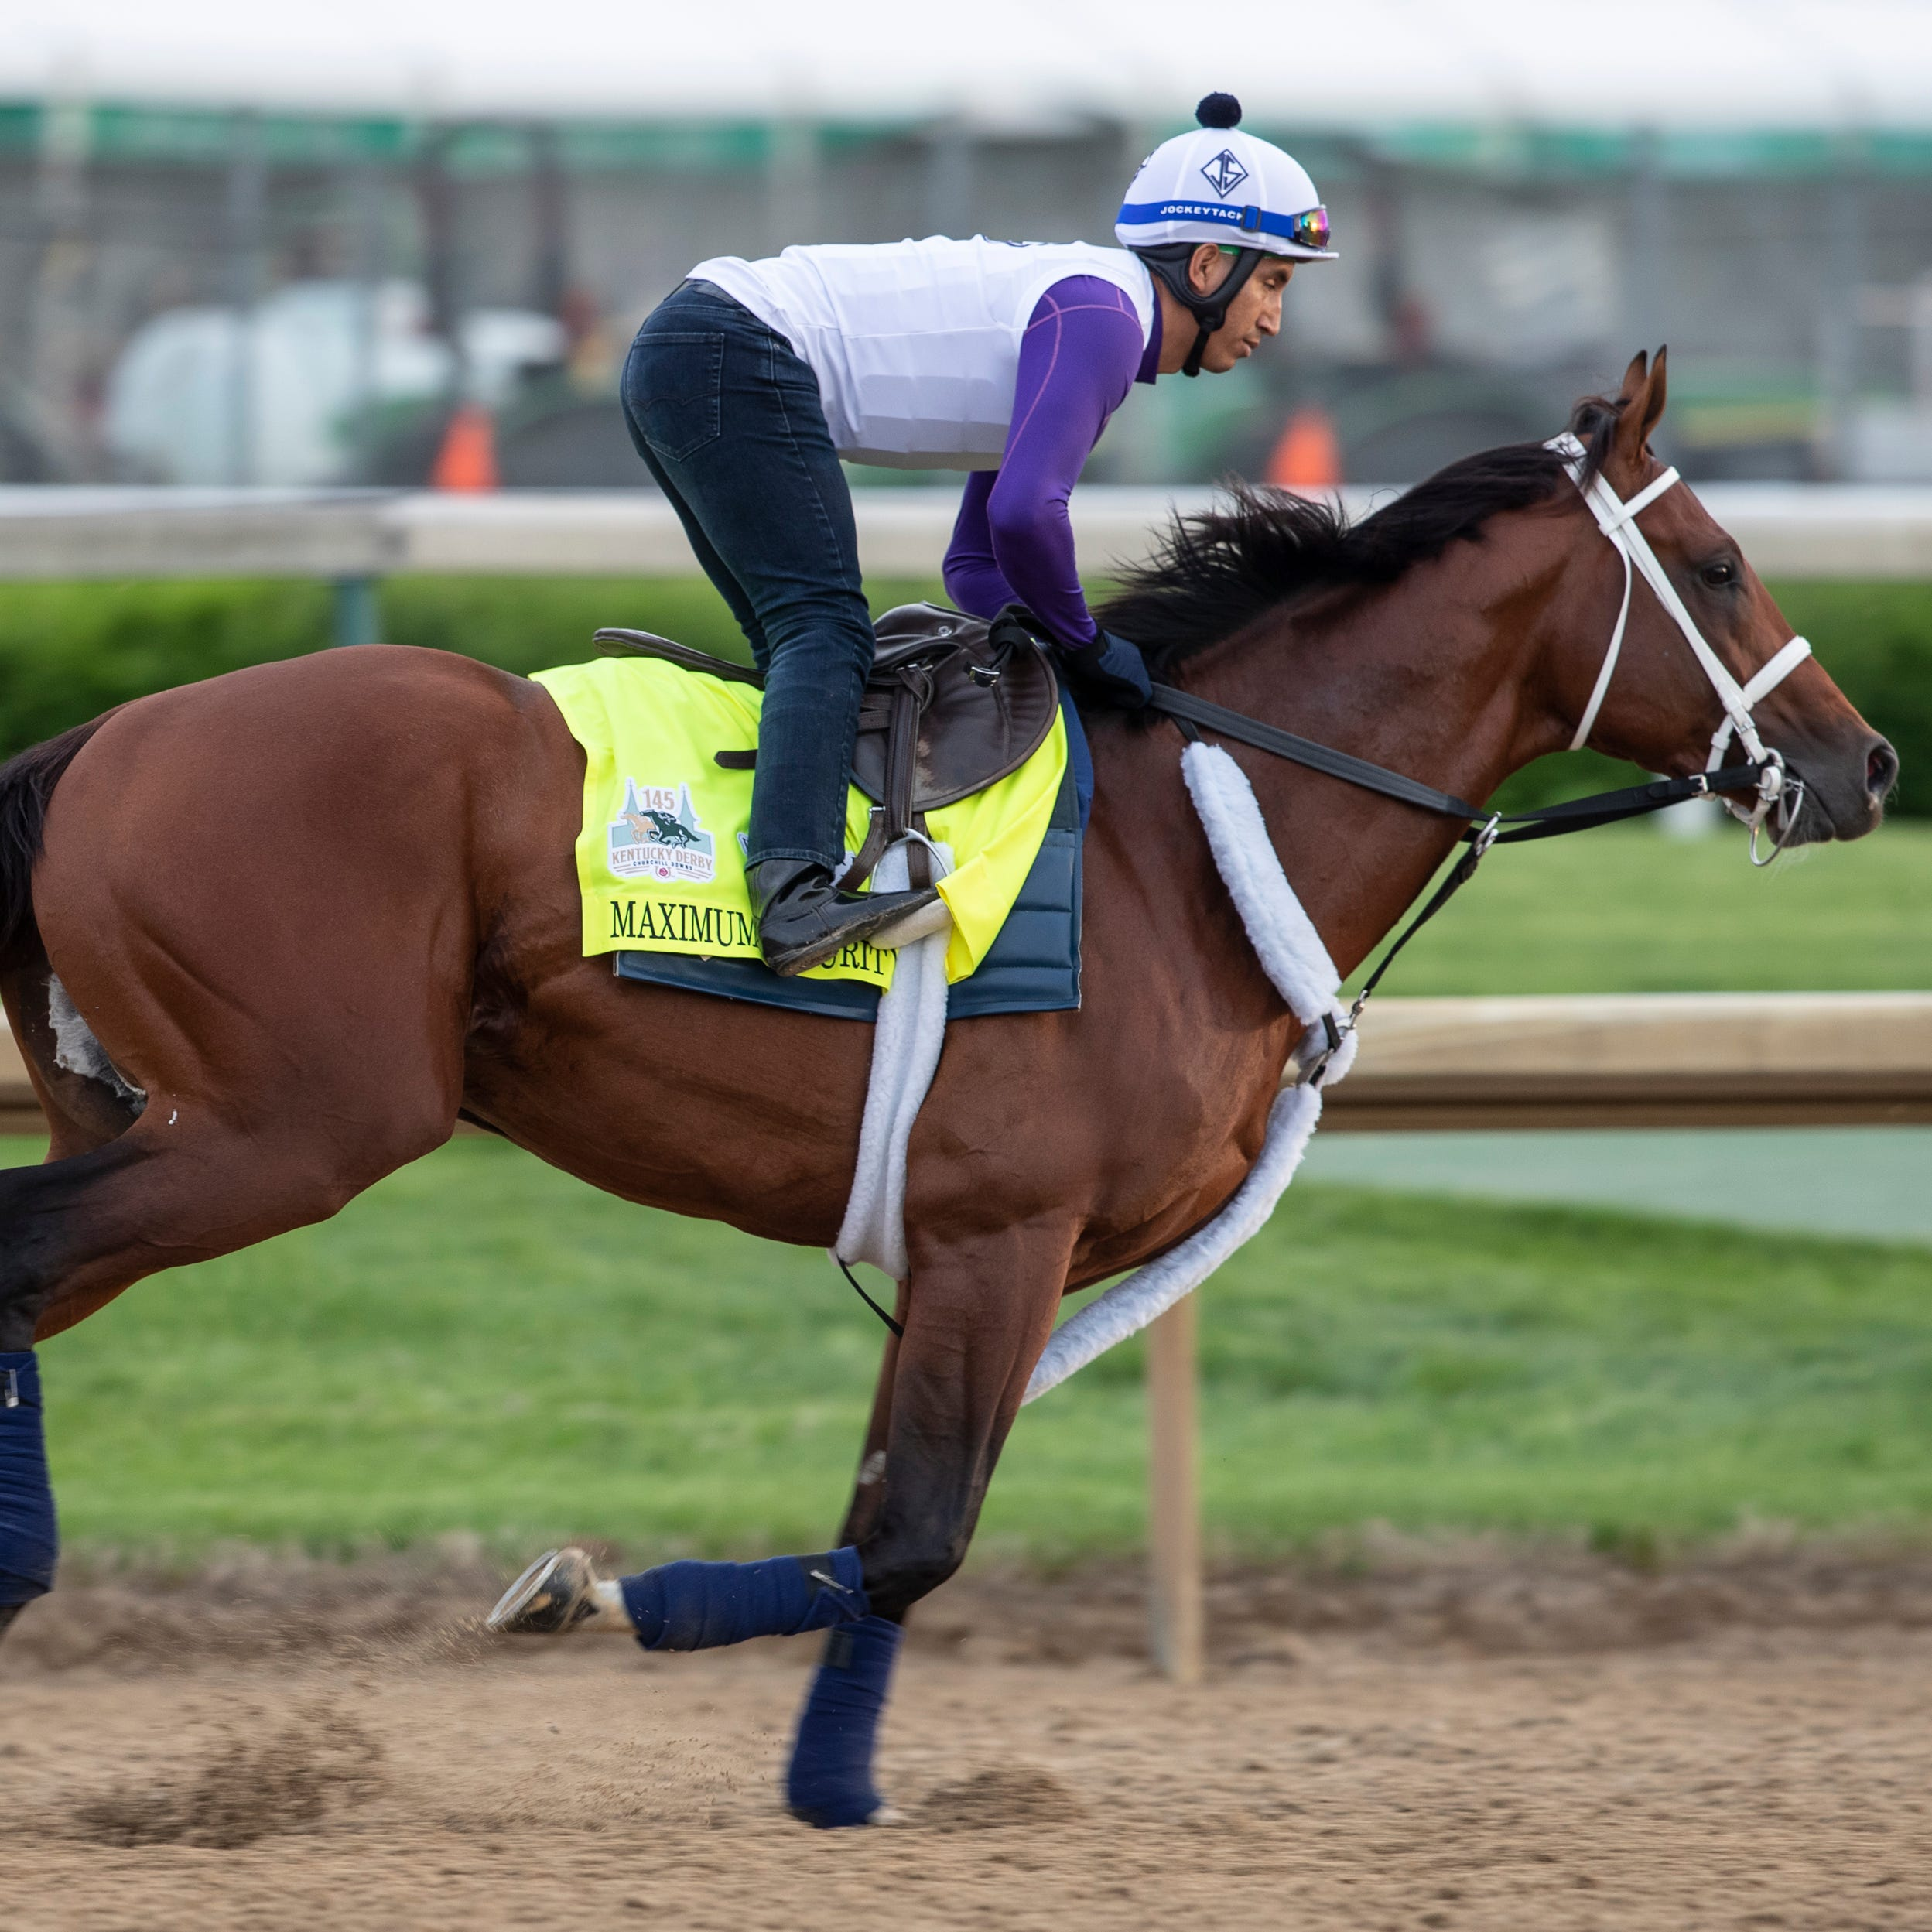 Haikal scratched from the Kentucky Derby